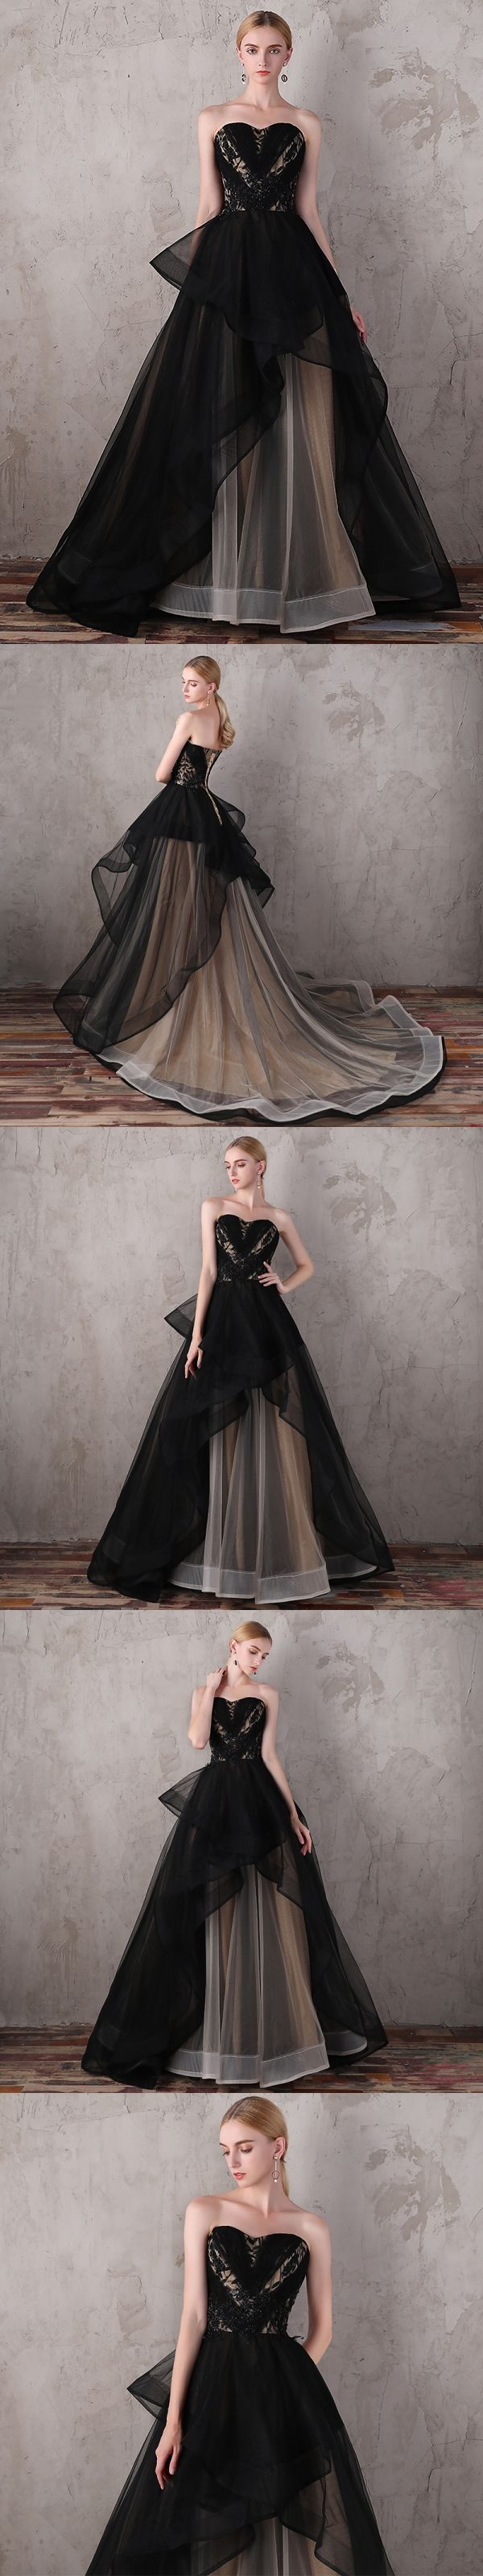 Black prom dresses sweetheart ball gown sweep train sexy long prom